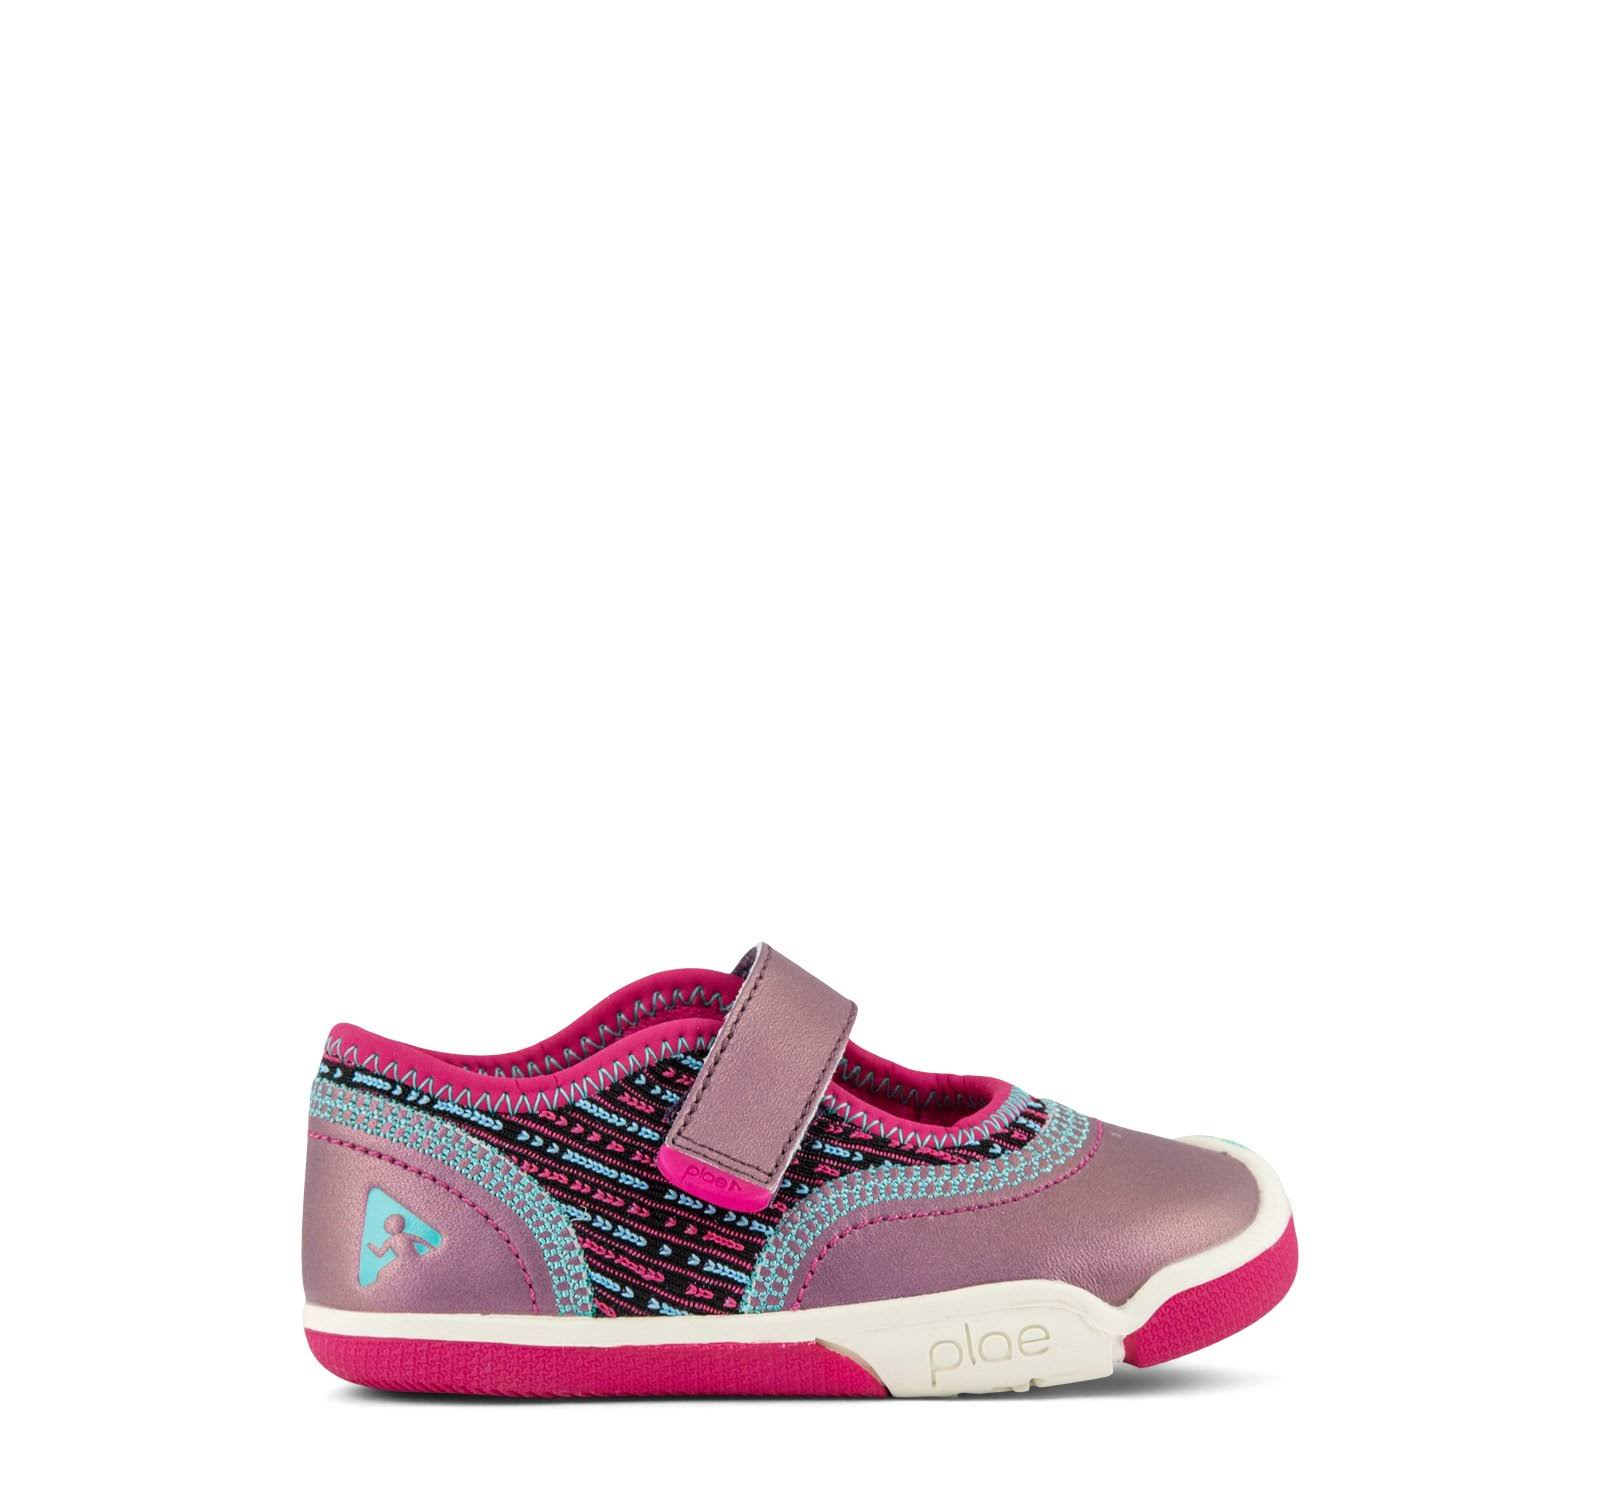 Plae Girl's Emme Mary Jane Shoes - Pink, Size 13